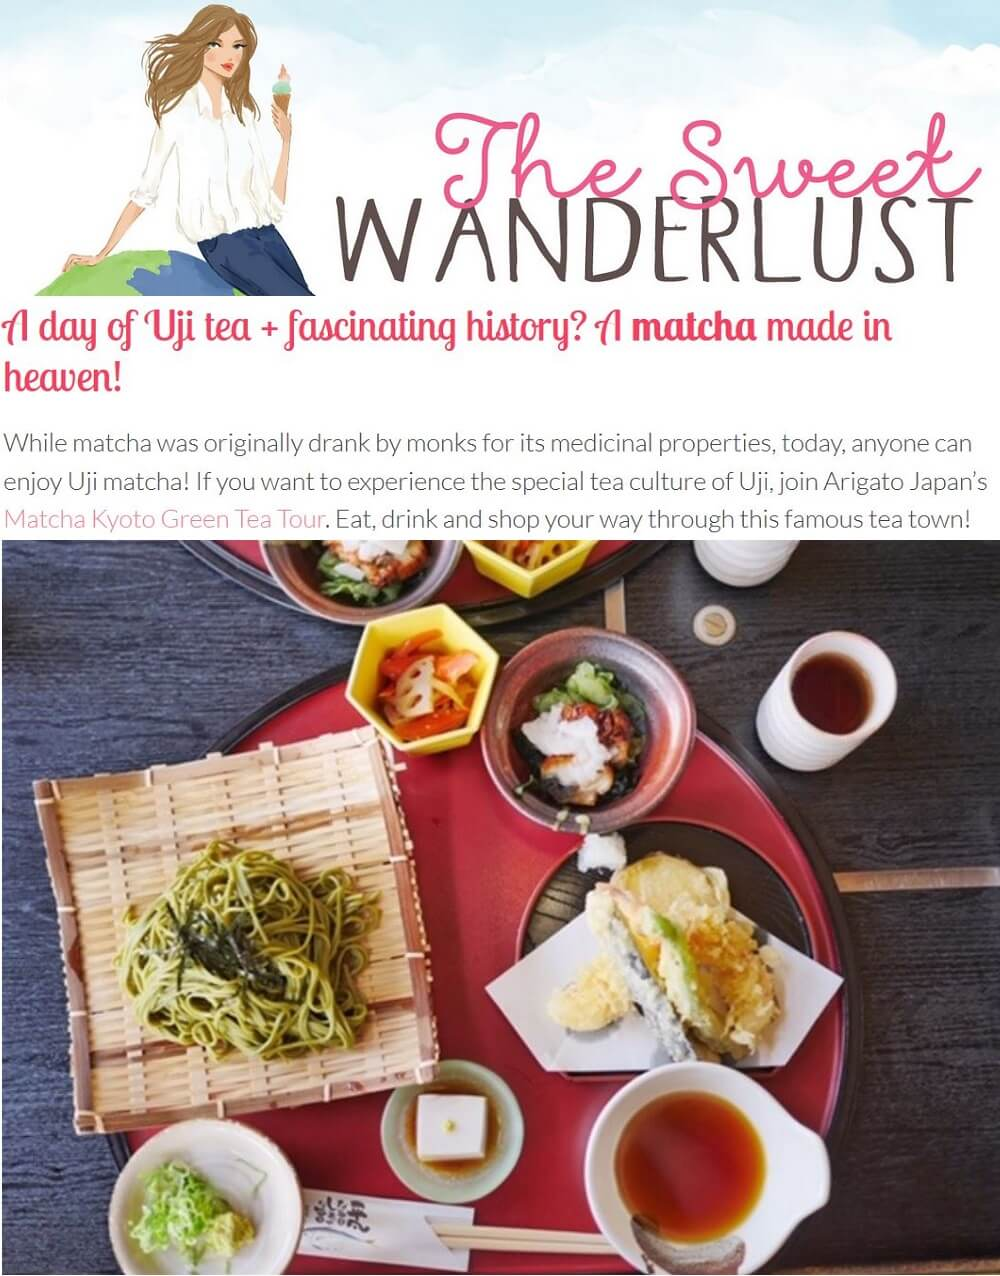 Matcha Kyoto Green Tea Tour - The Sweet Wanderlust